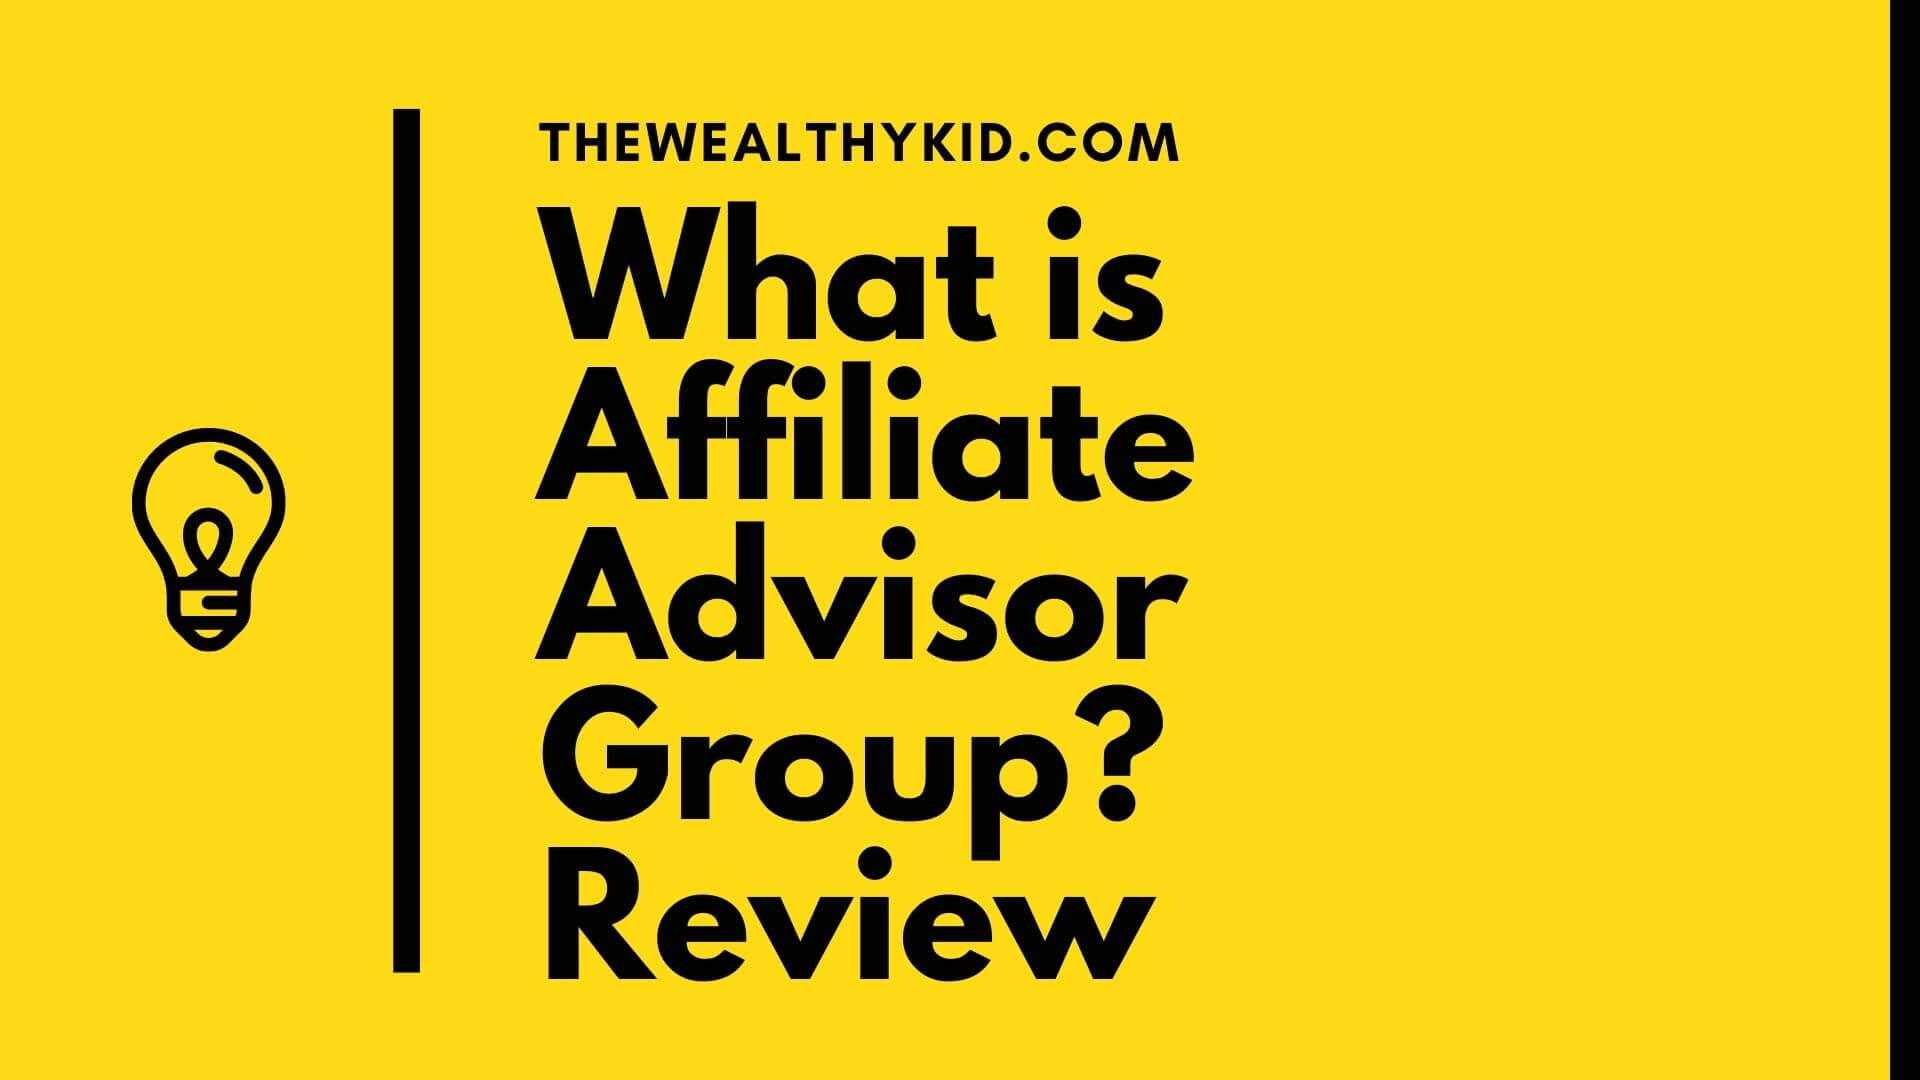 What is Affiliate Advisor Group